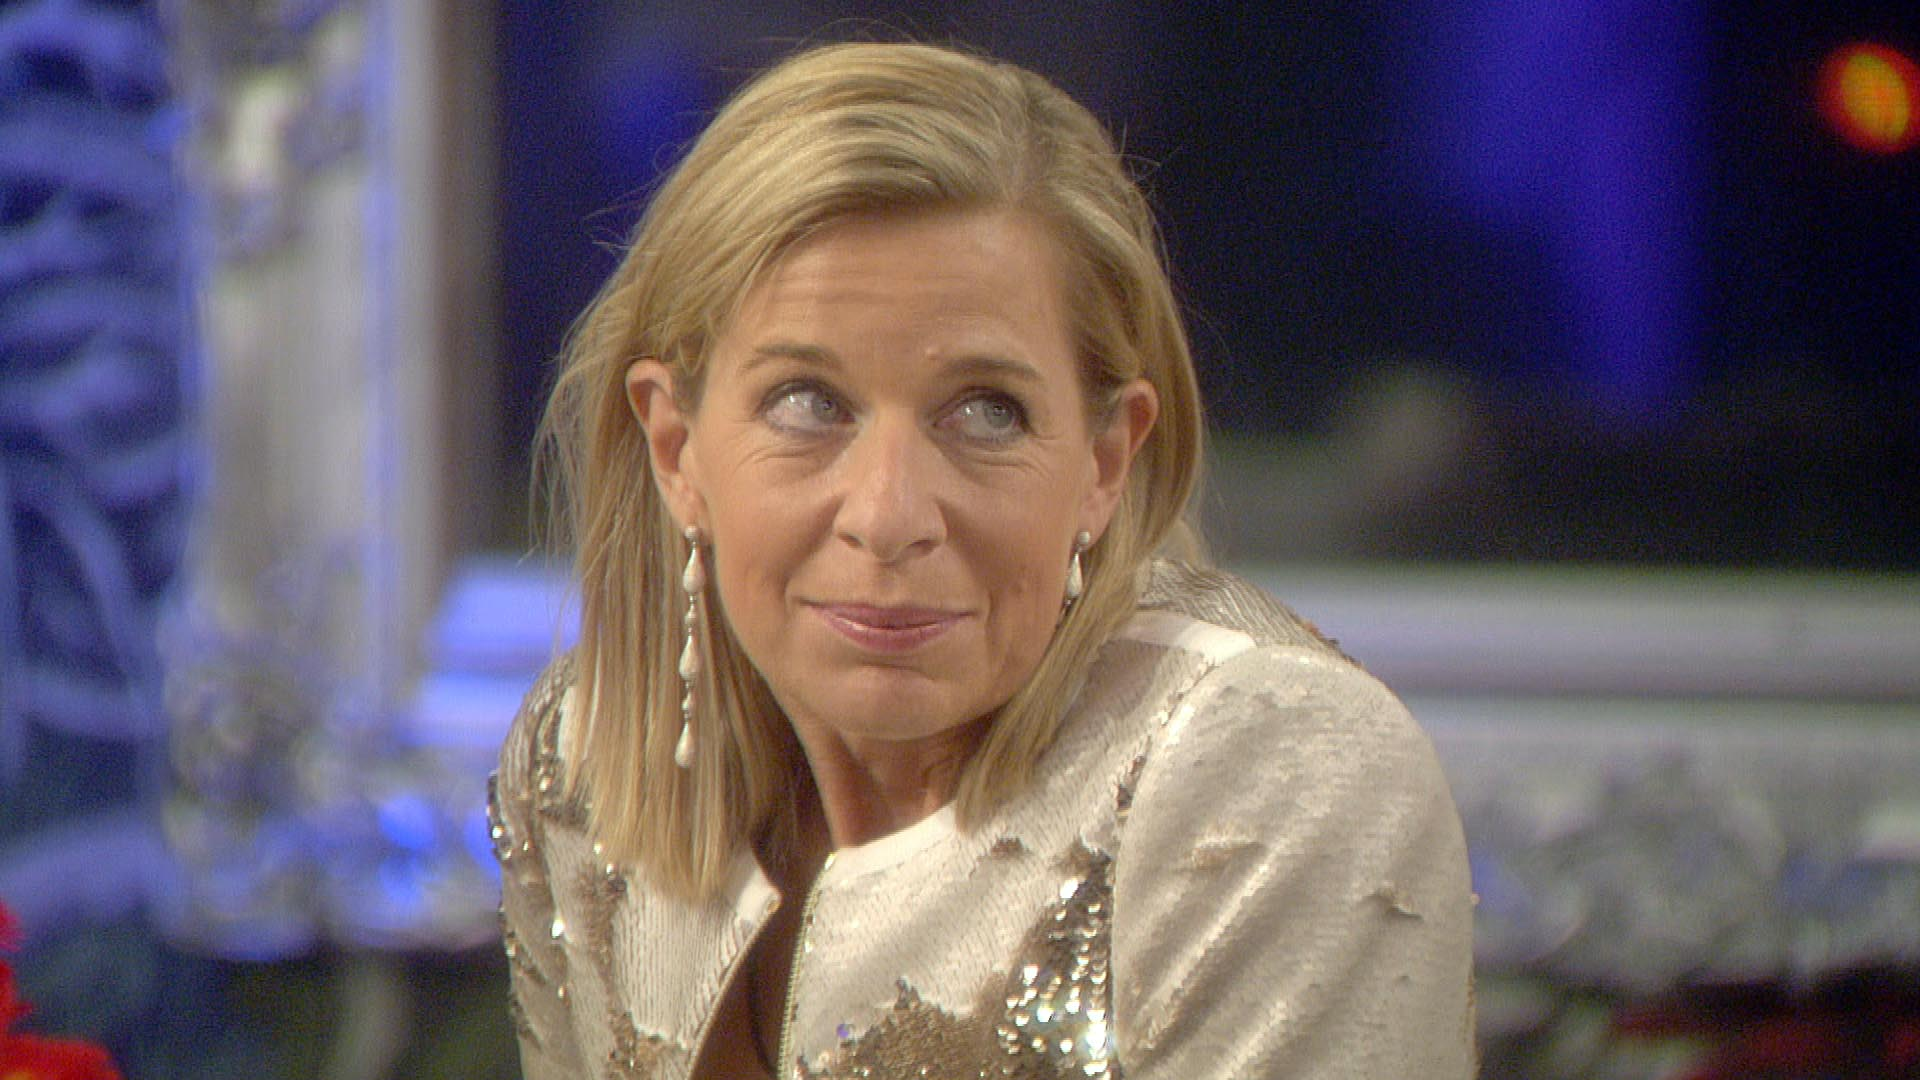 Celebrity Big Brother 2015: Katie Hopkins becomes runner-up as Katie Price wins!